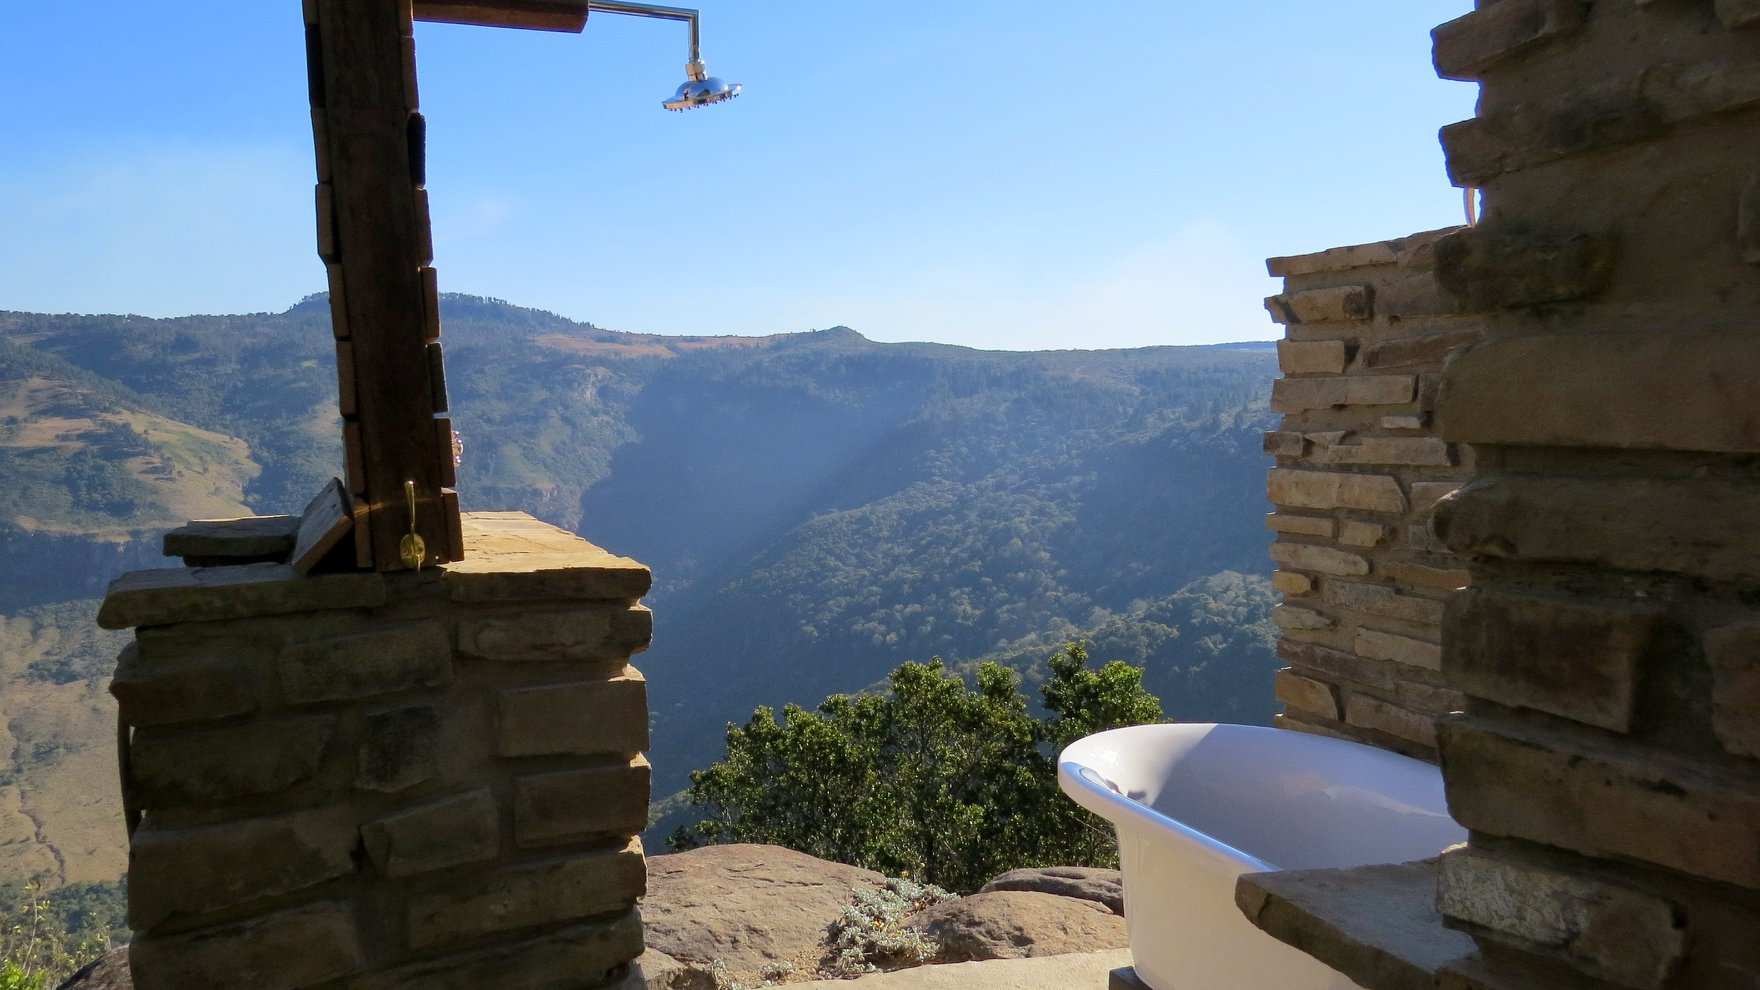 An outdoor bathroom with views of the Hogsback mountains and cliffs